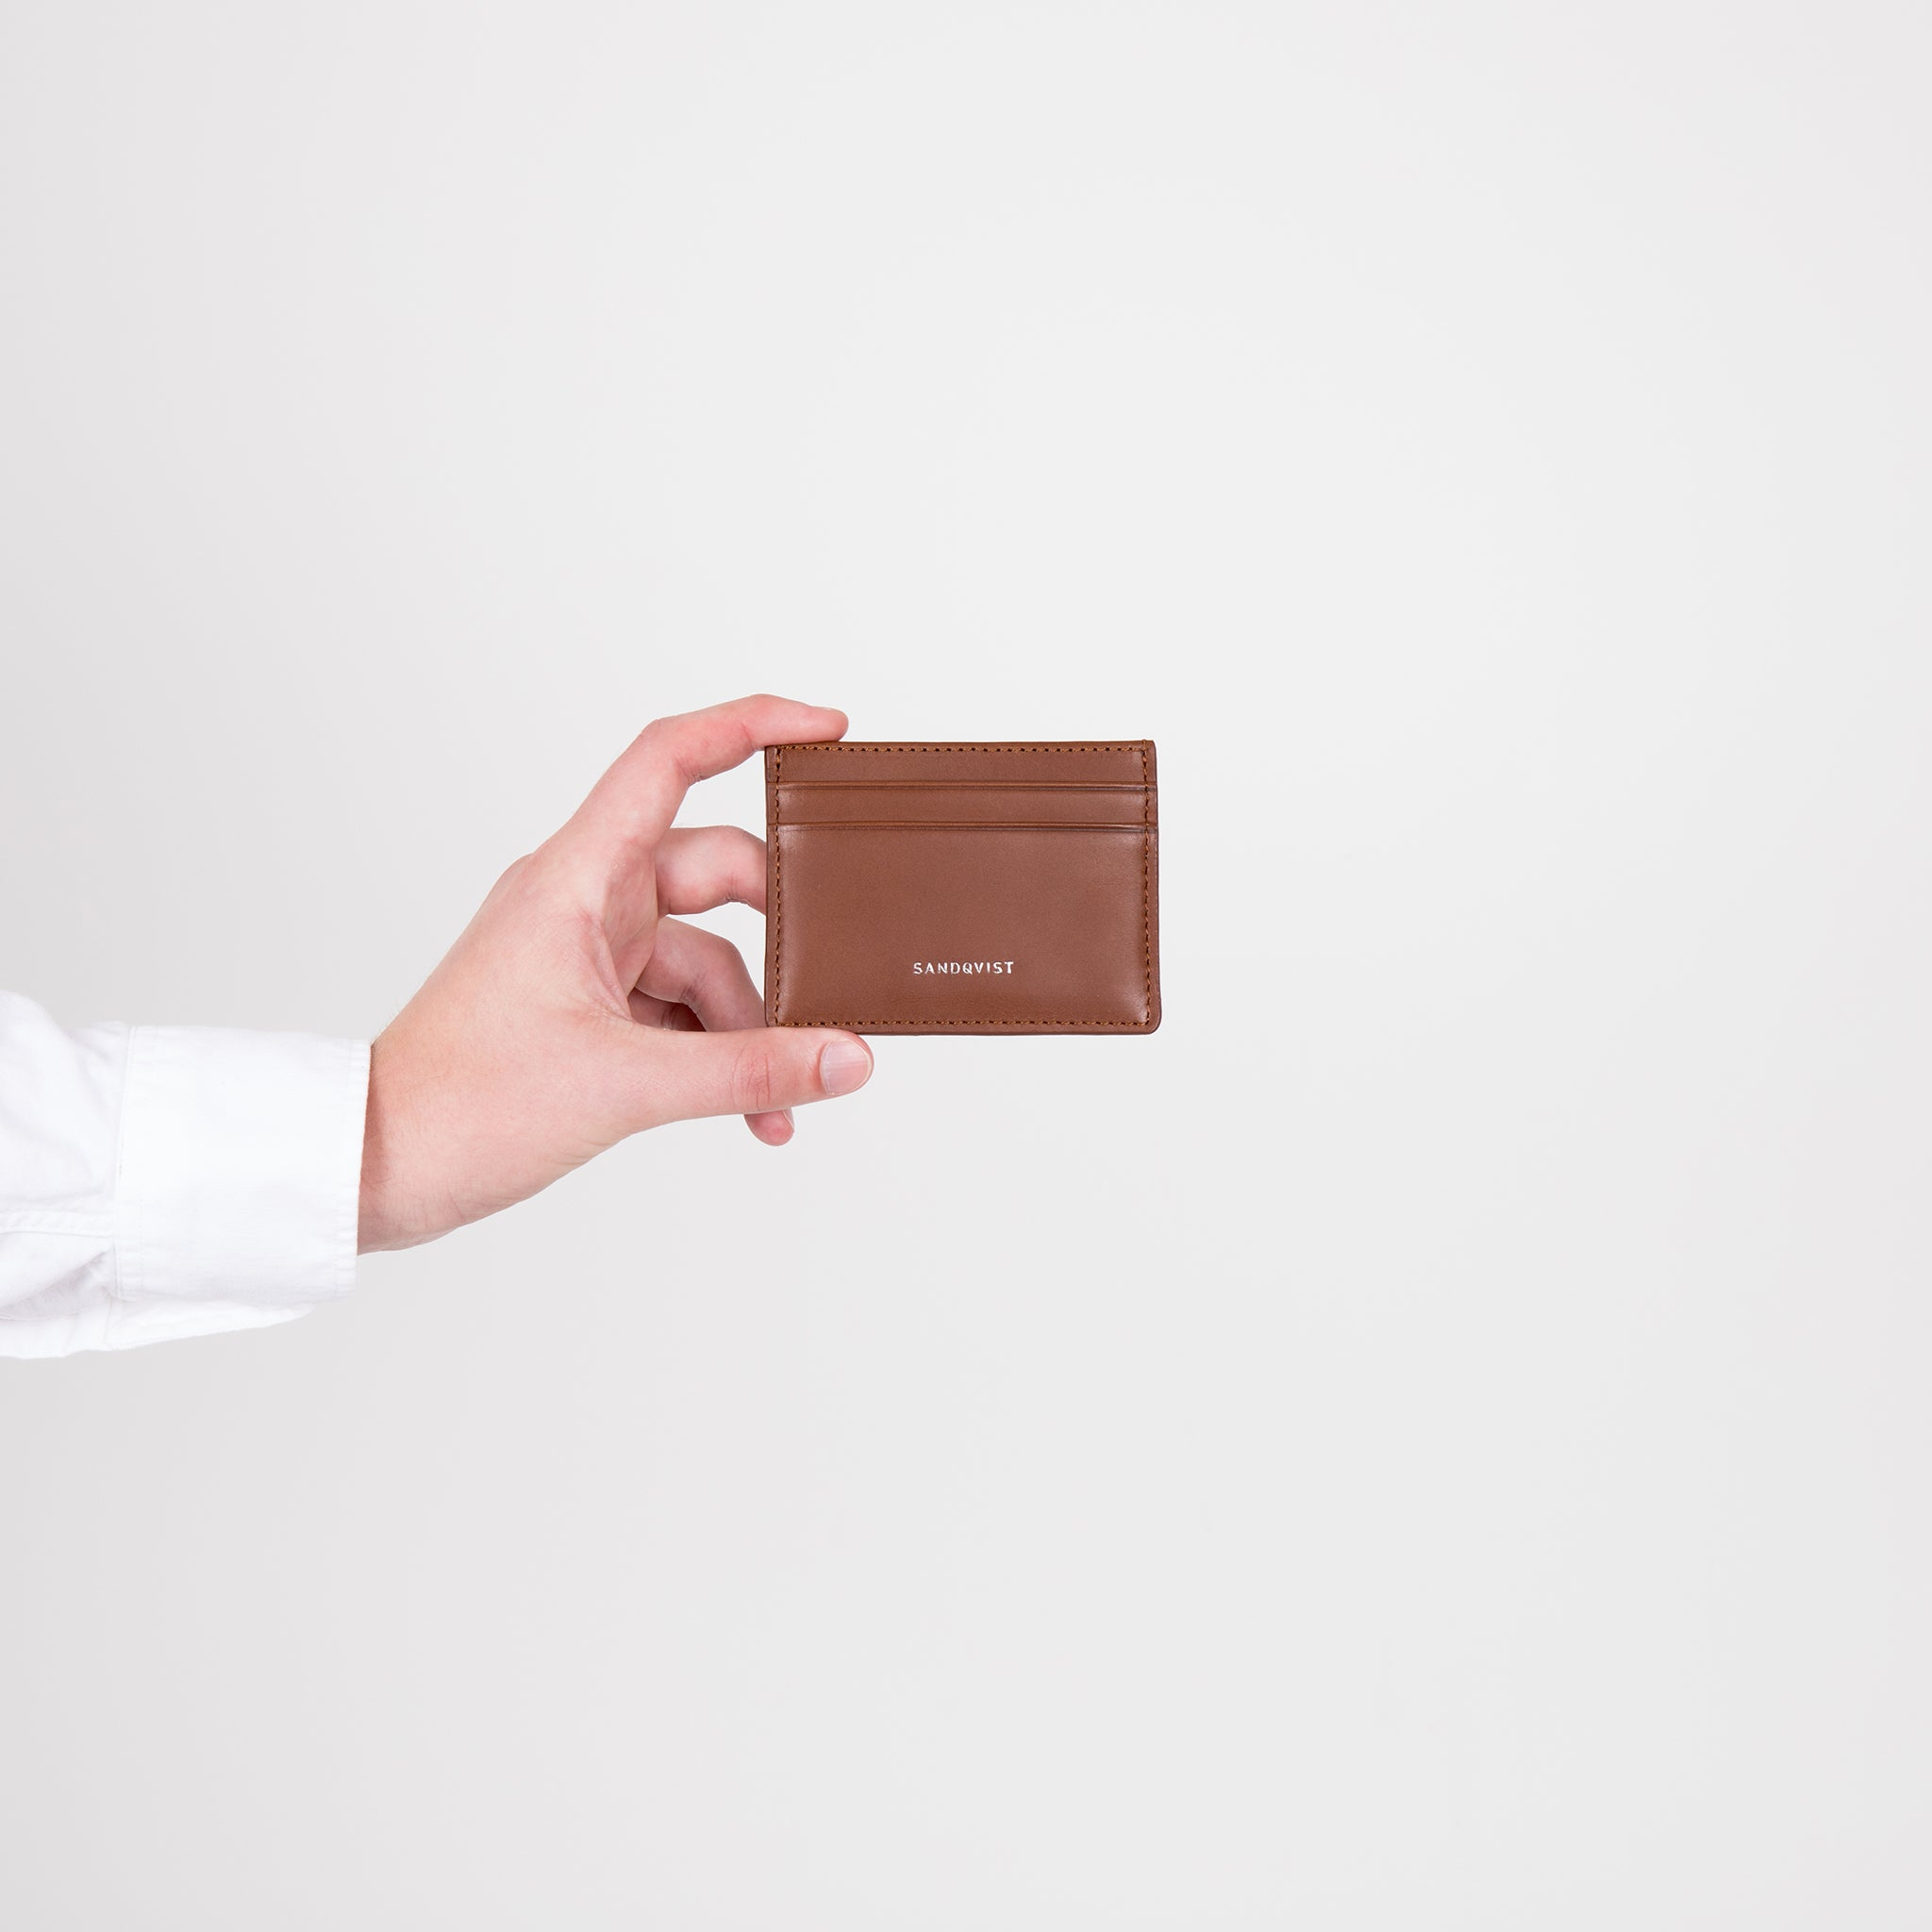 Sandqvist Fred Wallet in Cognac Brown